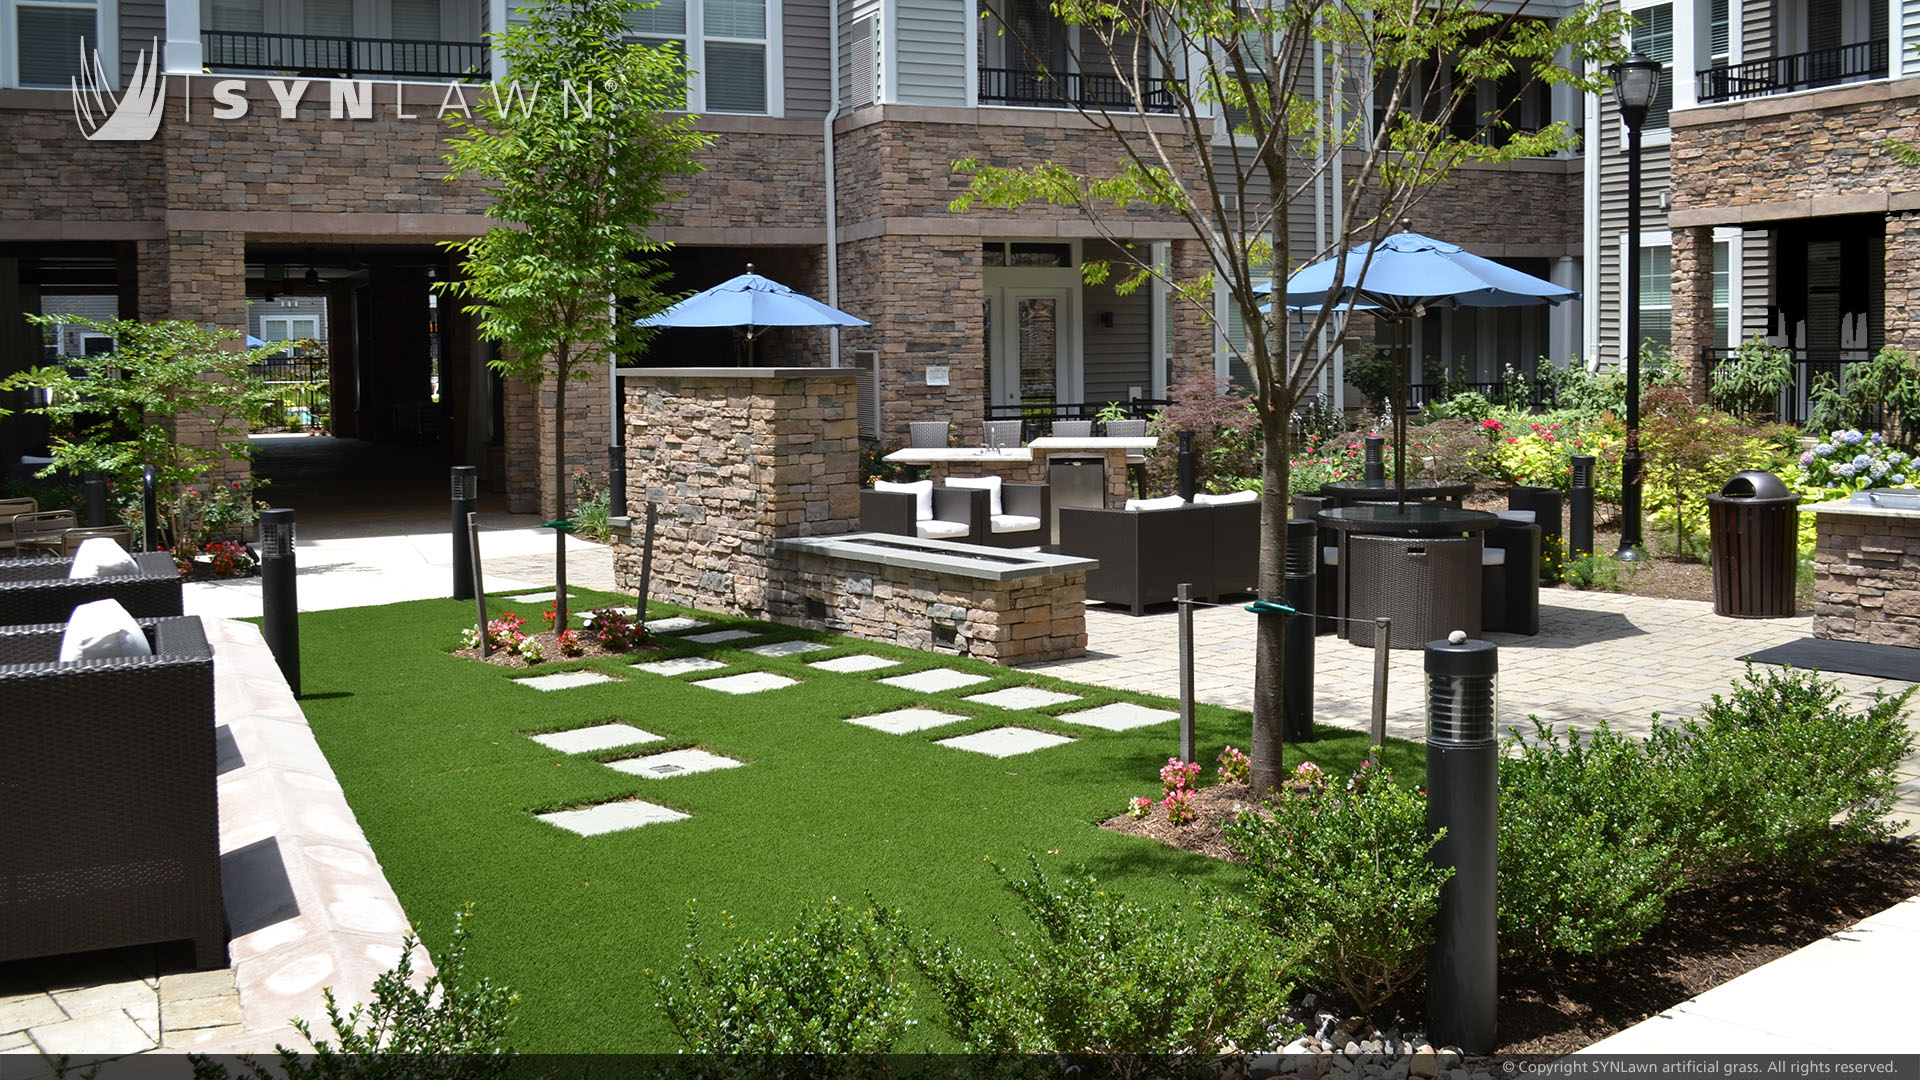 Wholesale artificial grass in a Pennsylvania courtyard